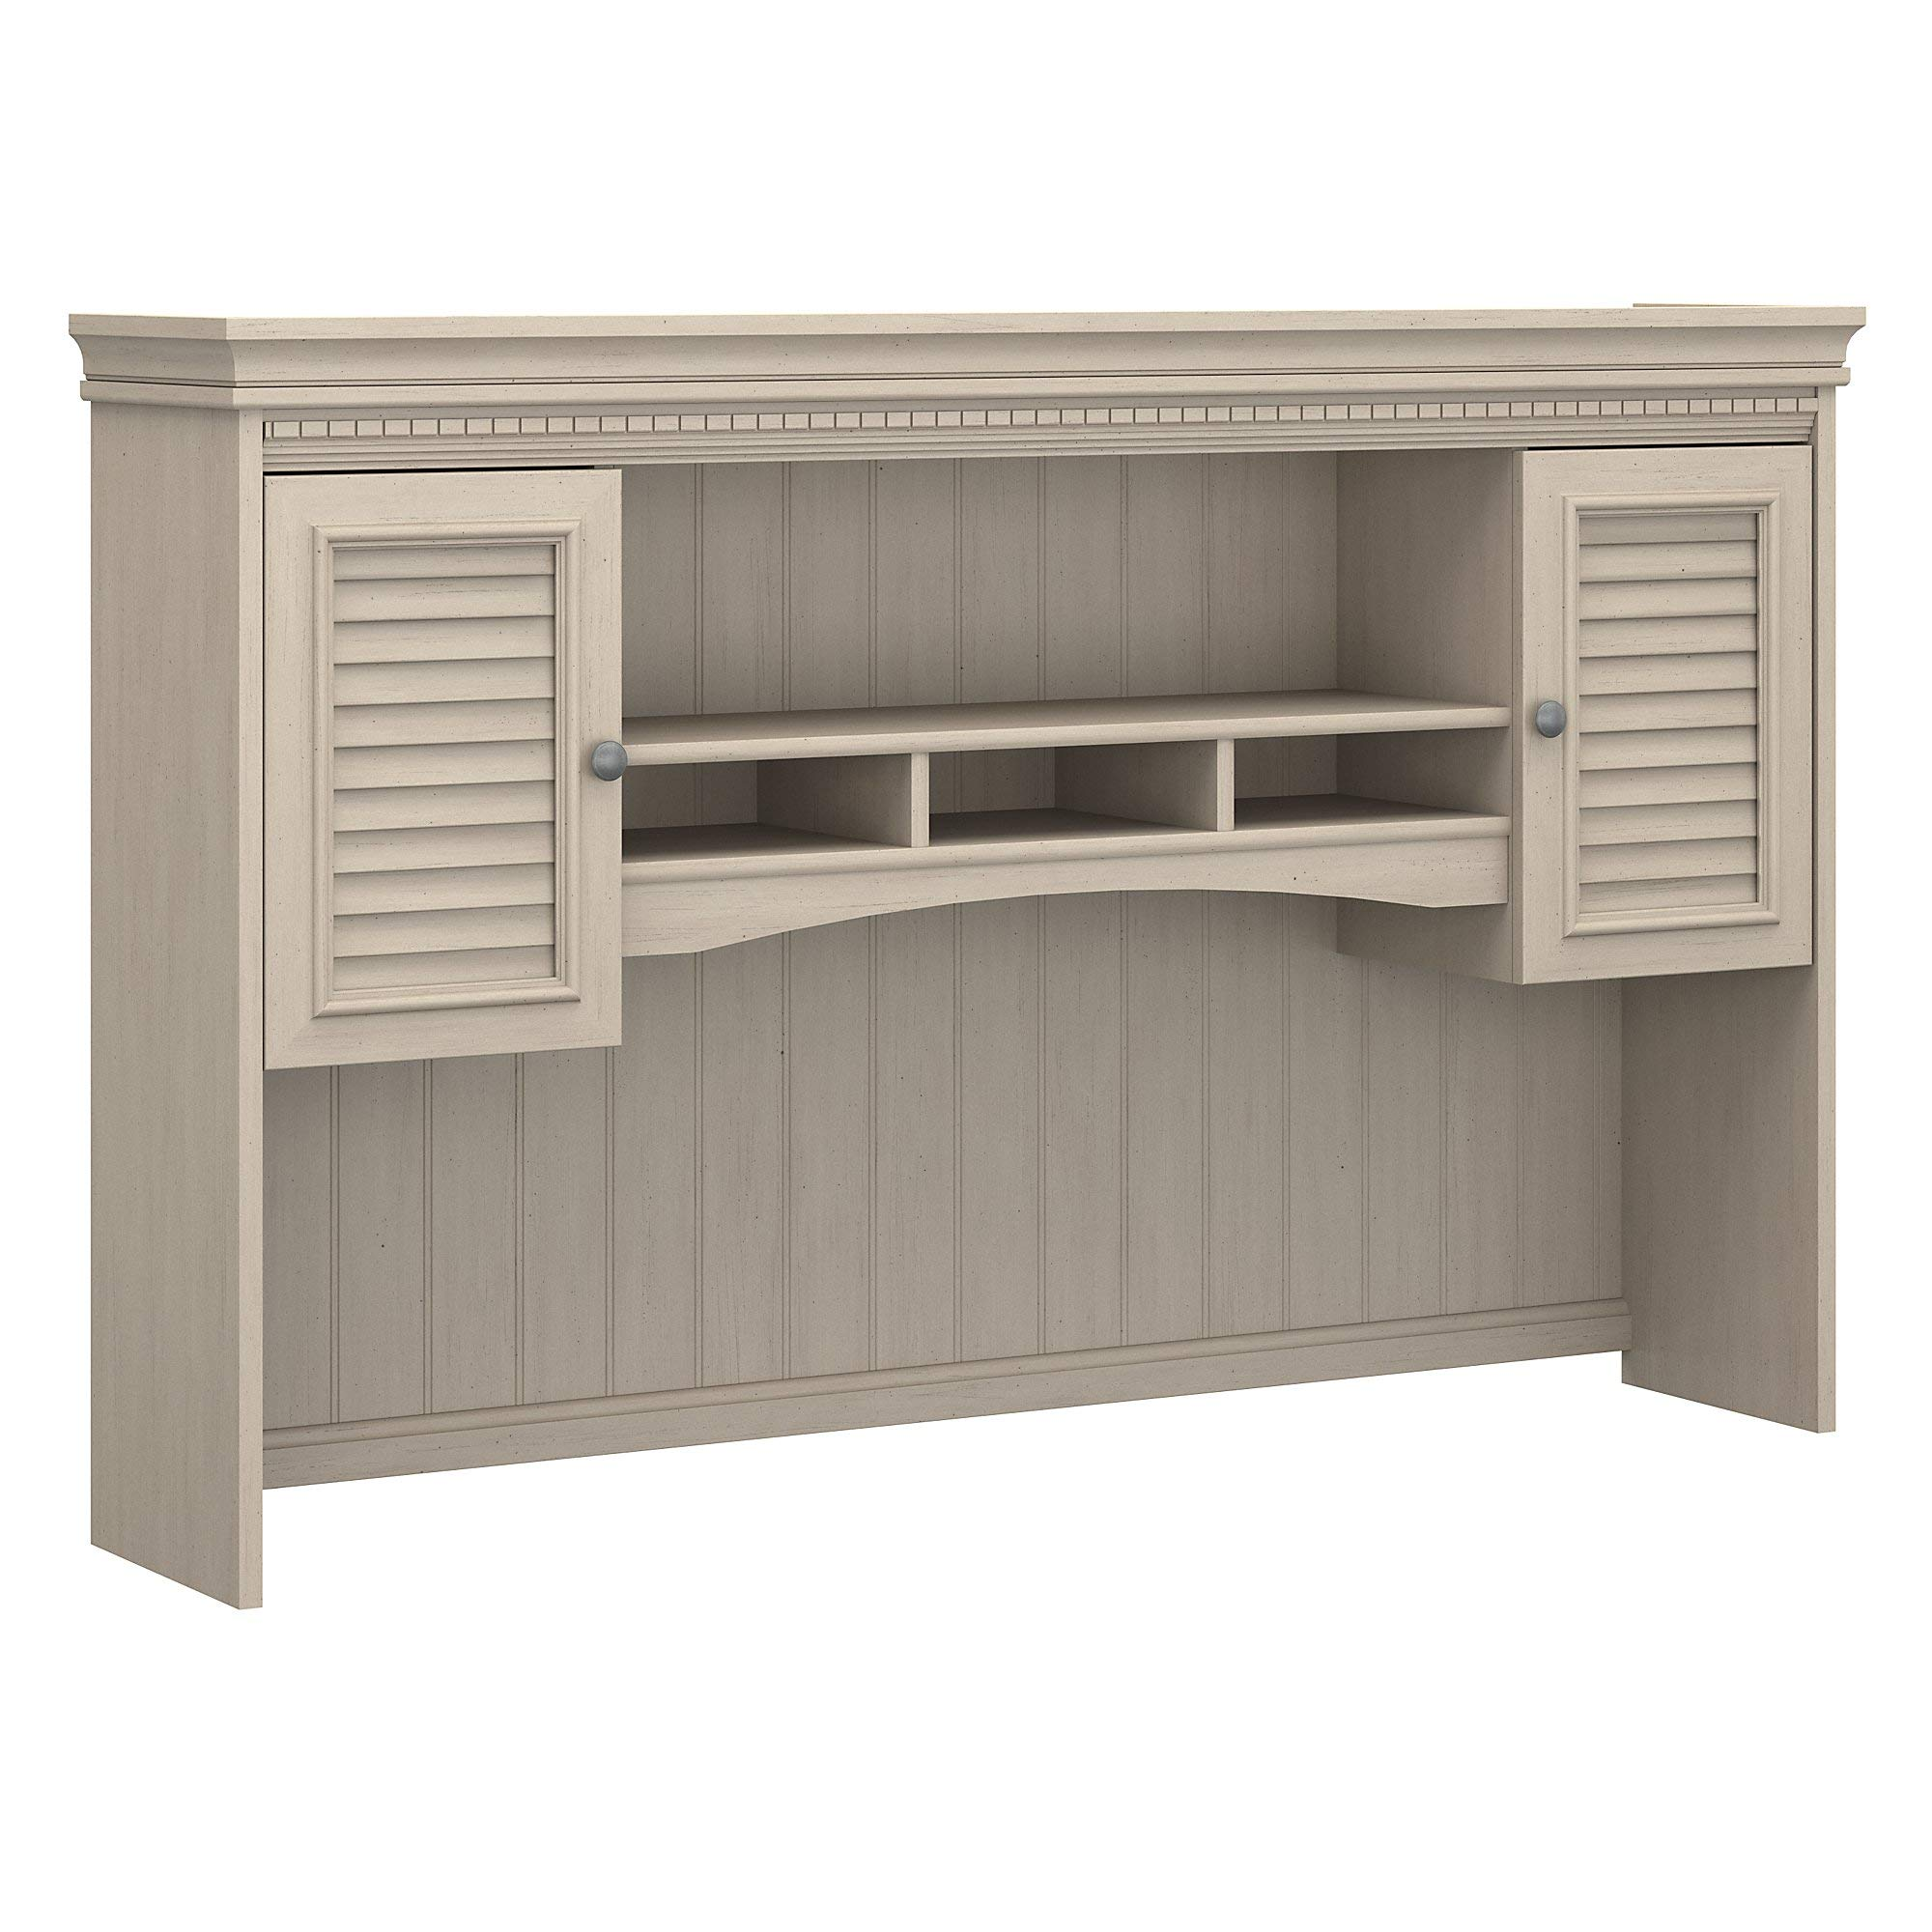 Bush Furniture Fairview Hutch for L Shaped Desk in Antique White by Bush Furniture